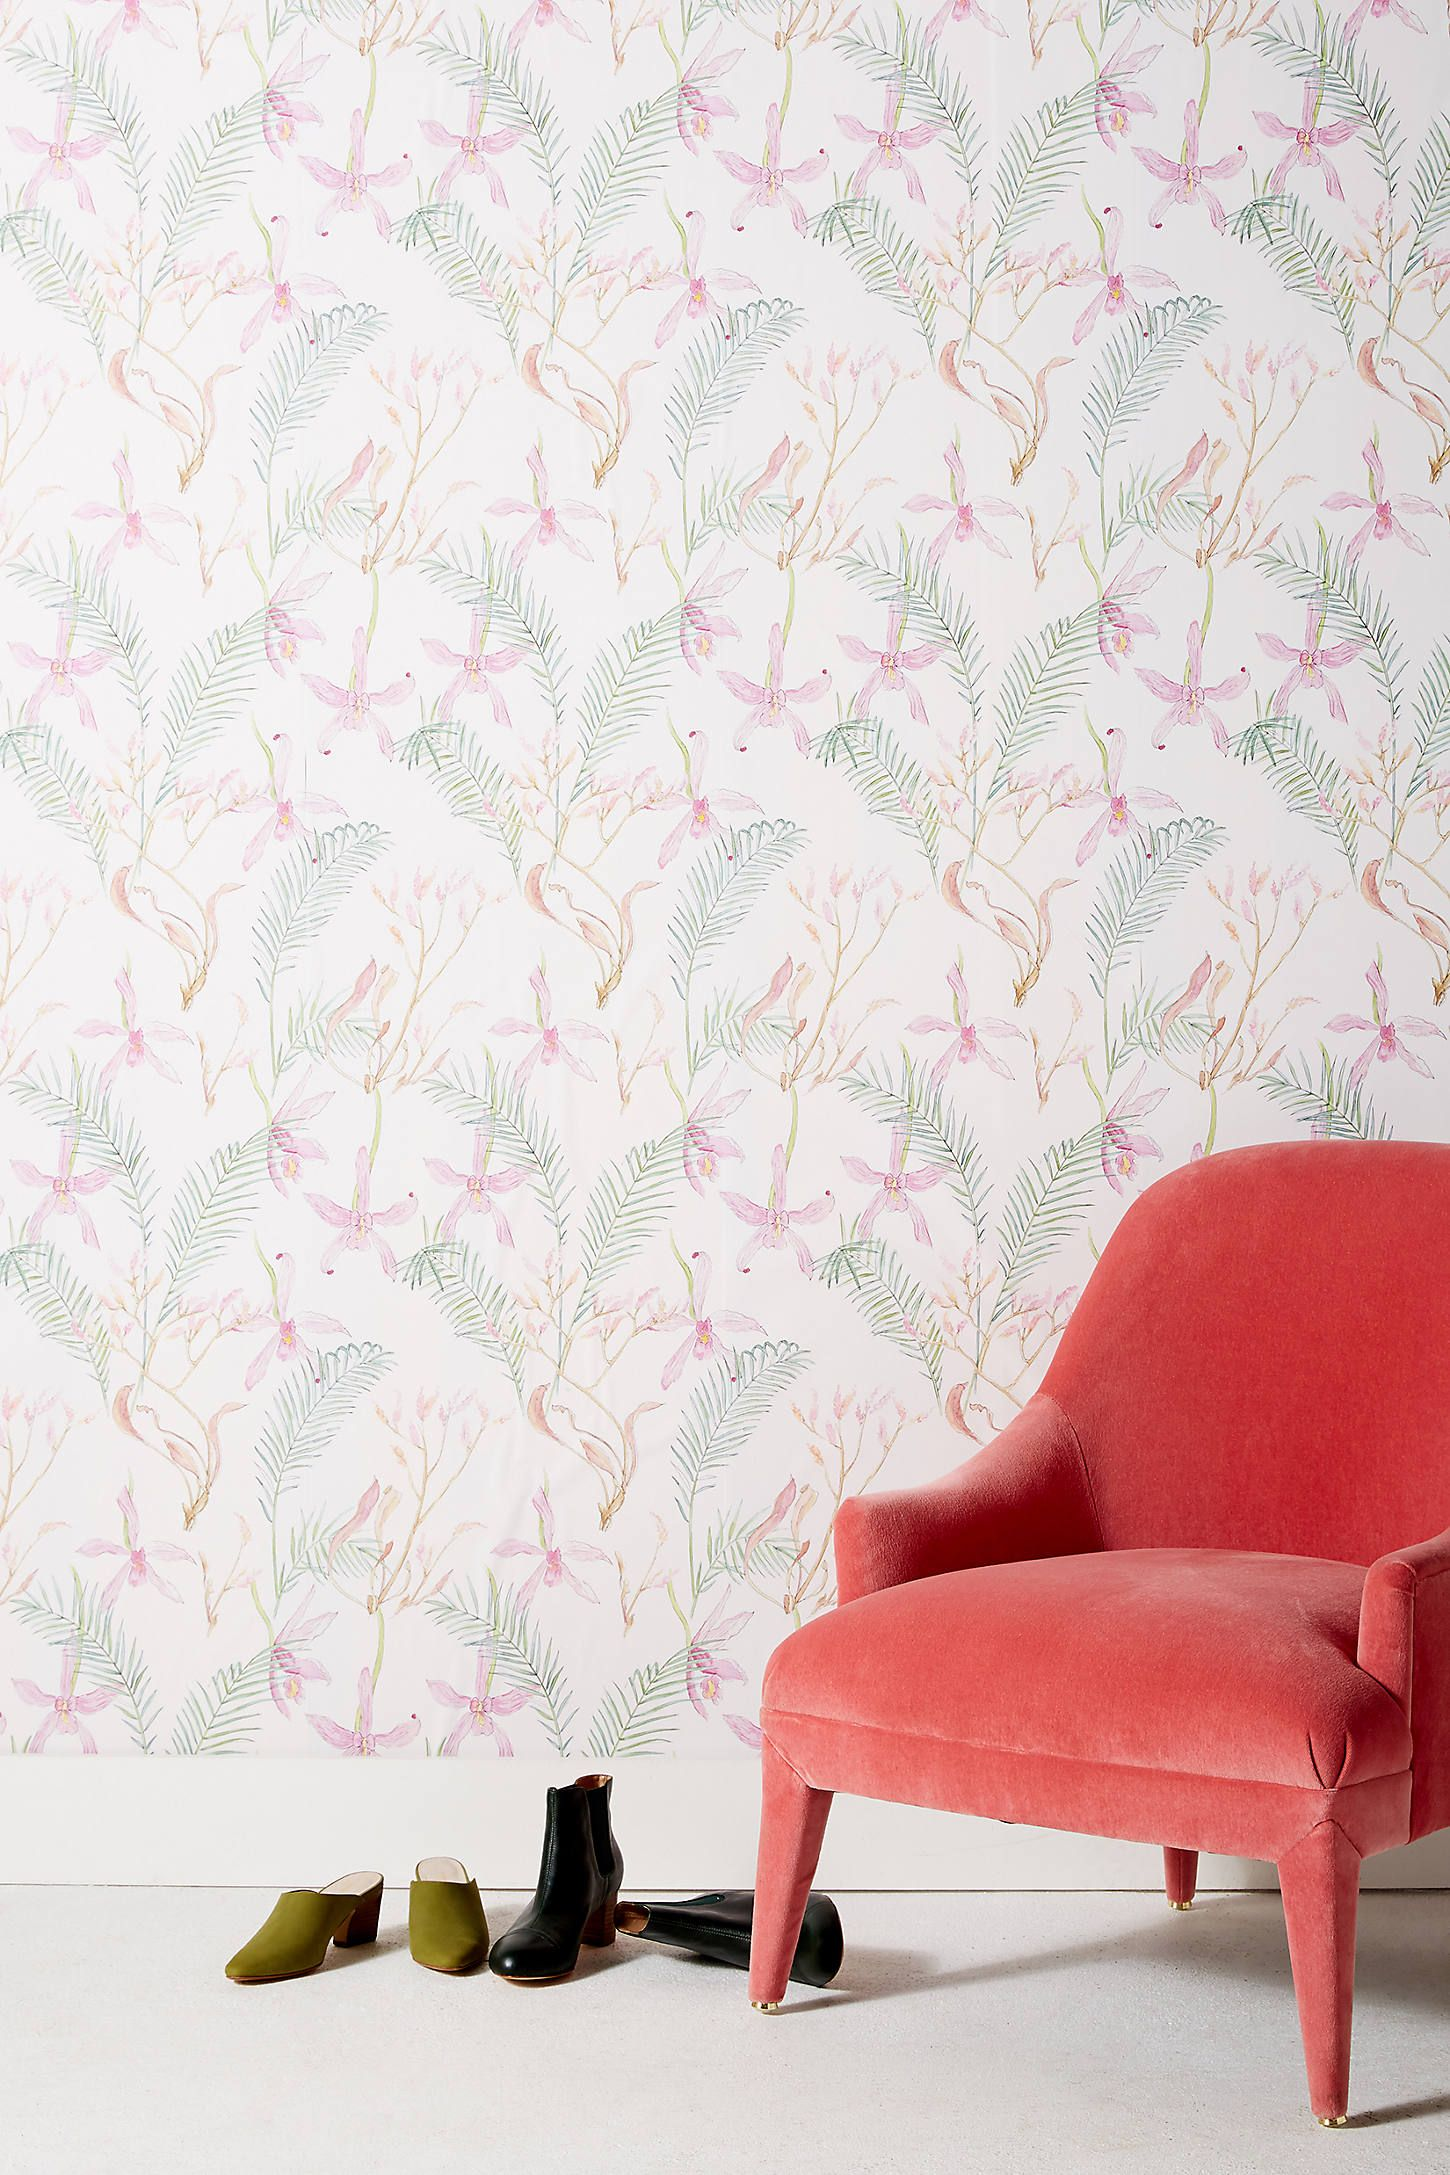 Anthropologie Iris Wallpaper by January Waters in Pink, Wall Decor